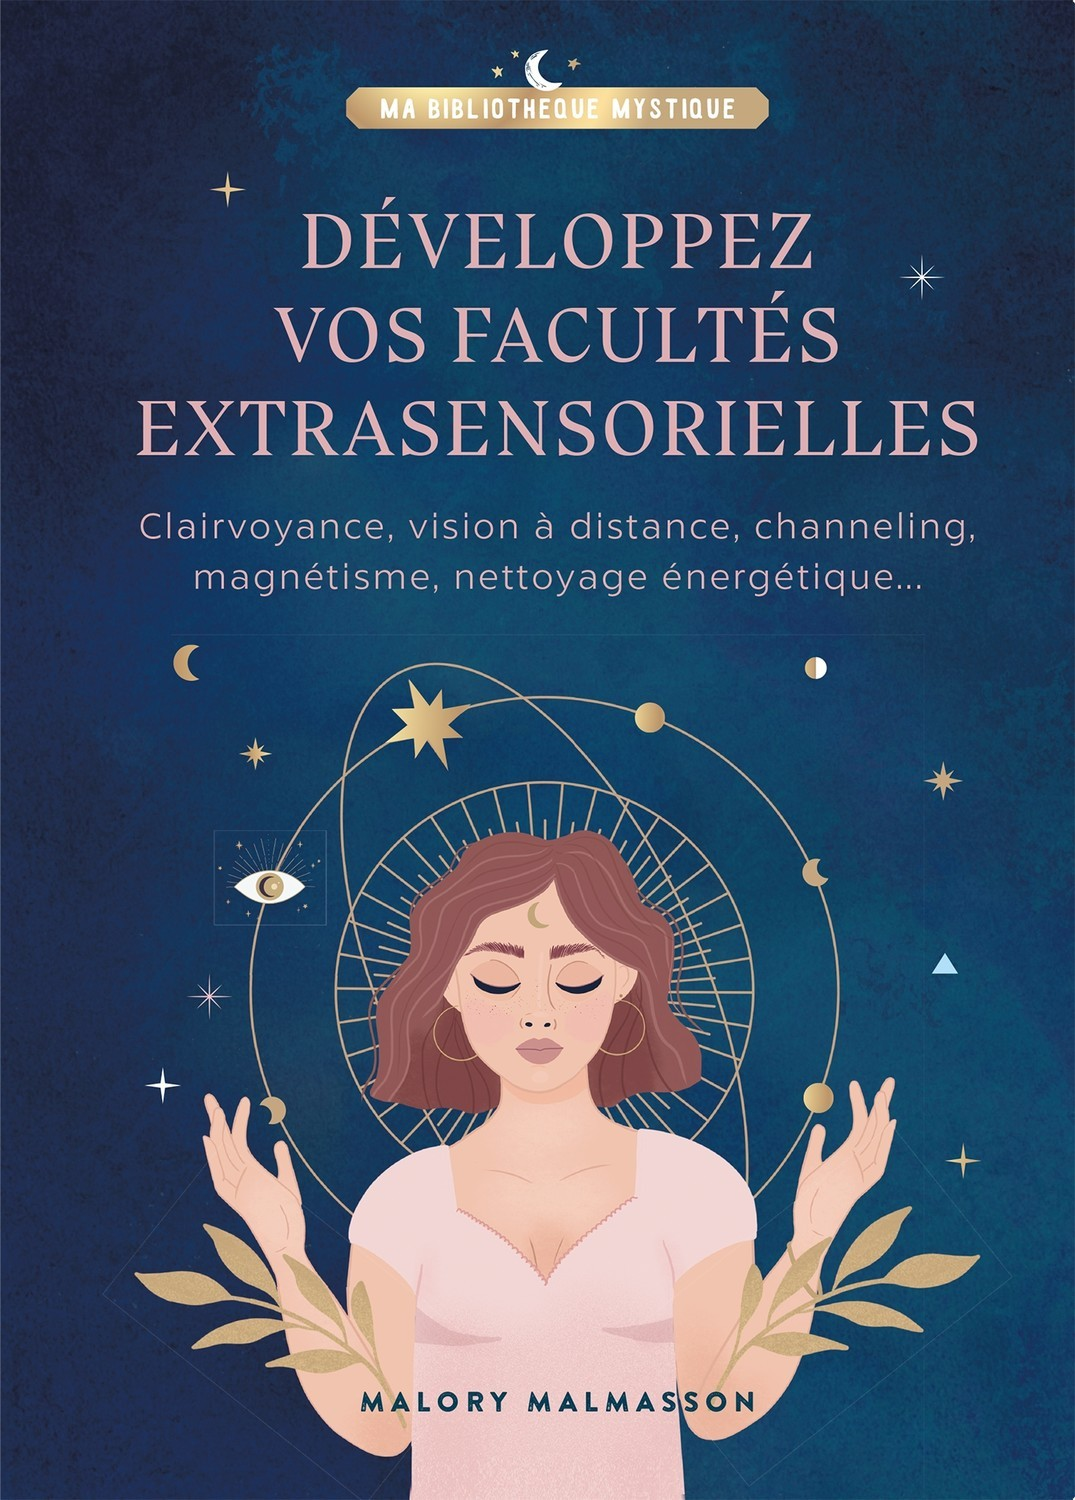 DEVELOPPER VOS FACULTES EXTRASENSORIELLES - CLAIRVOYANCE, VISION A DISTANCE, CHANNELING, MAGNETISME,